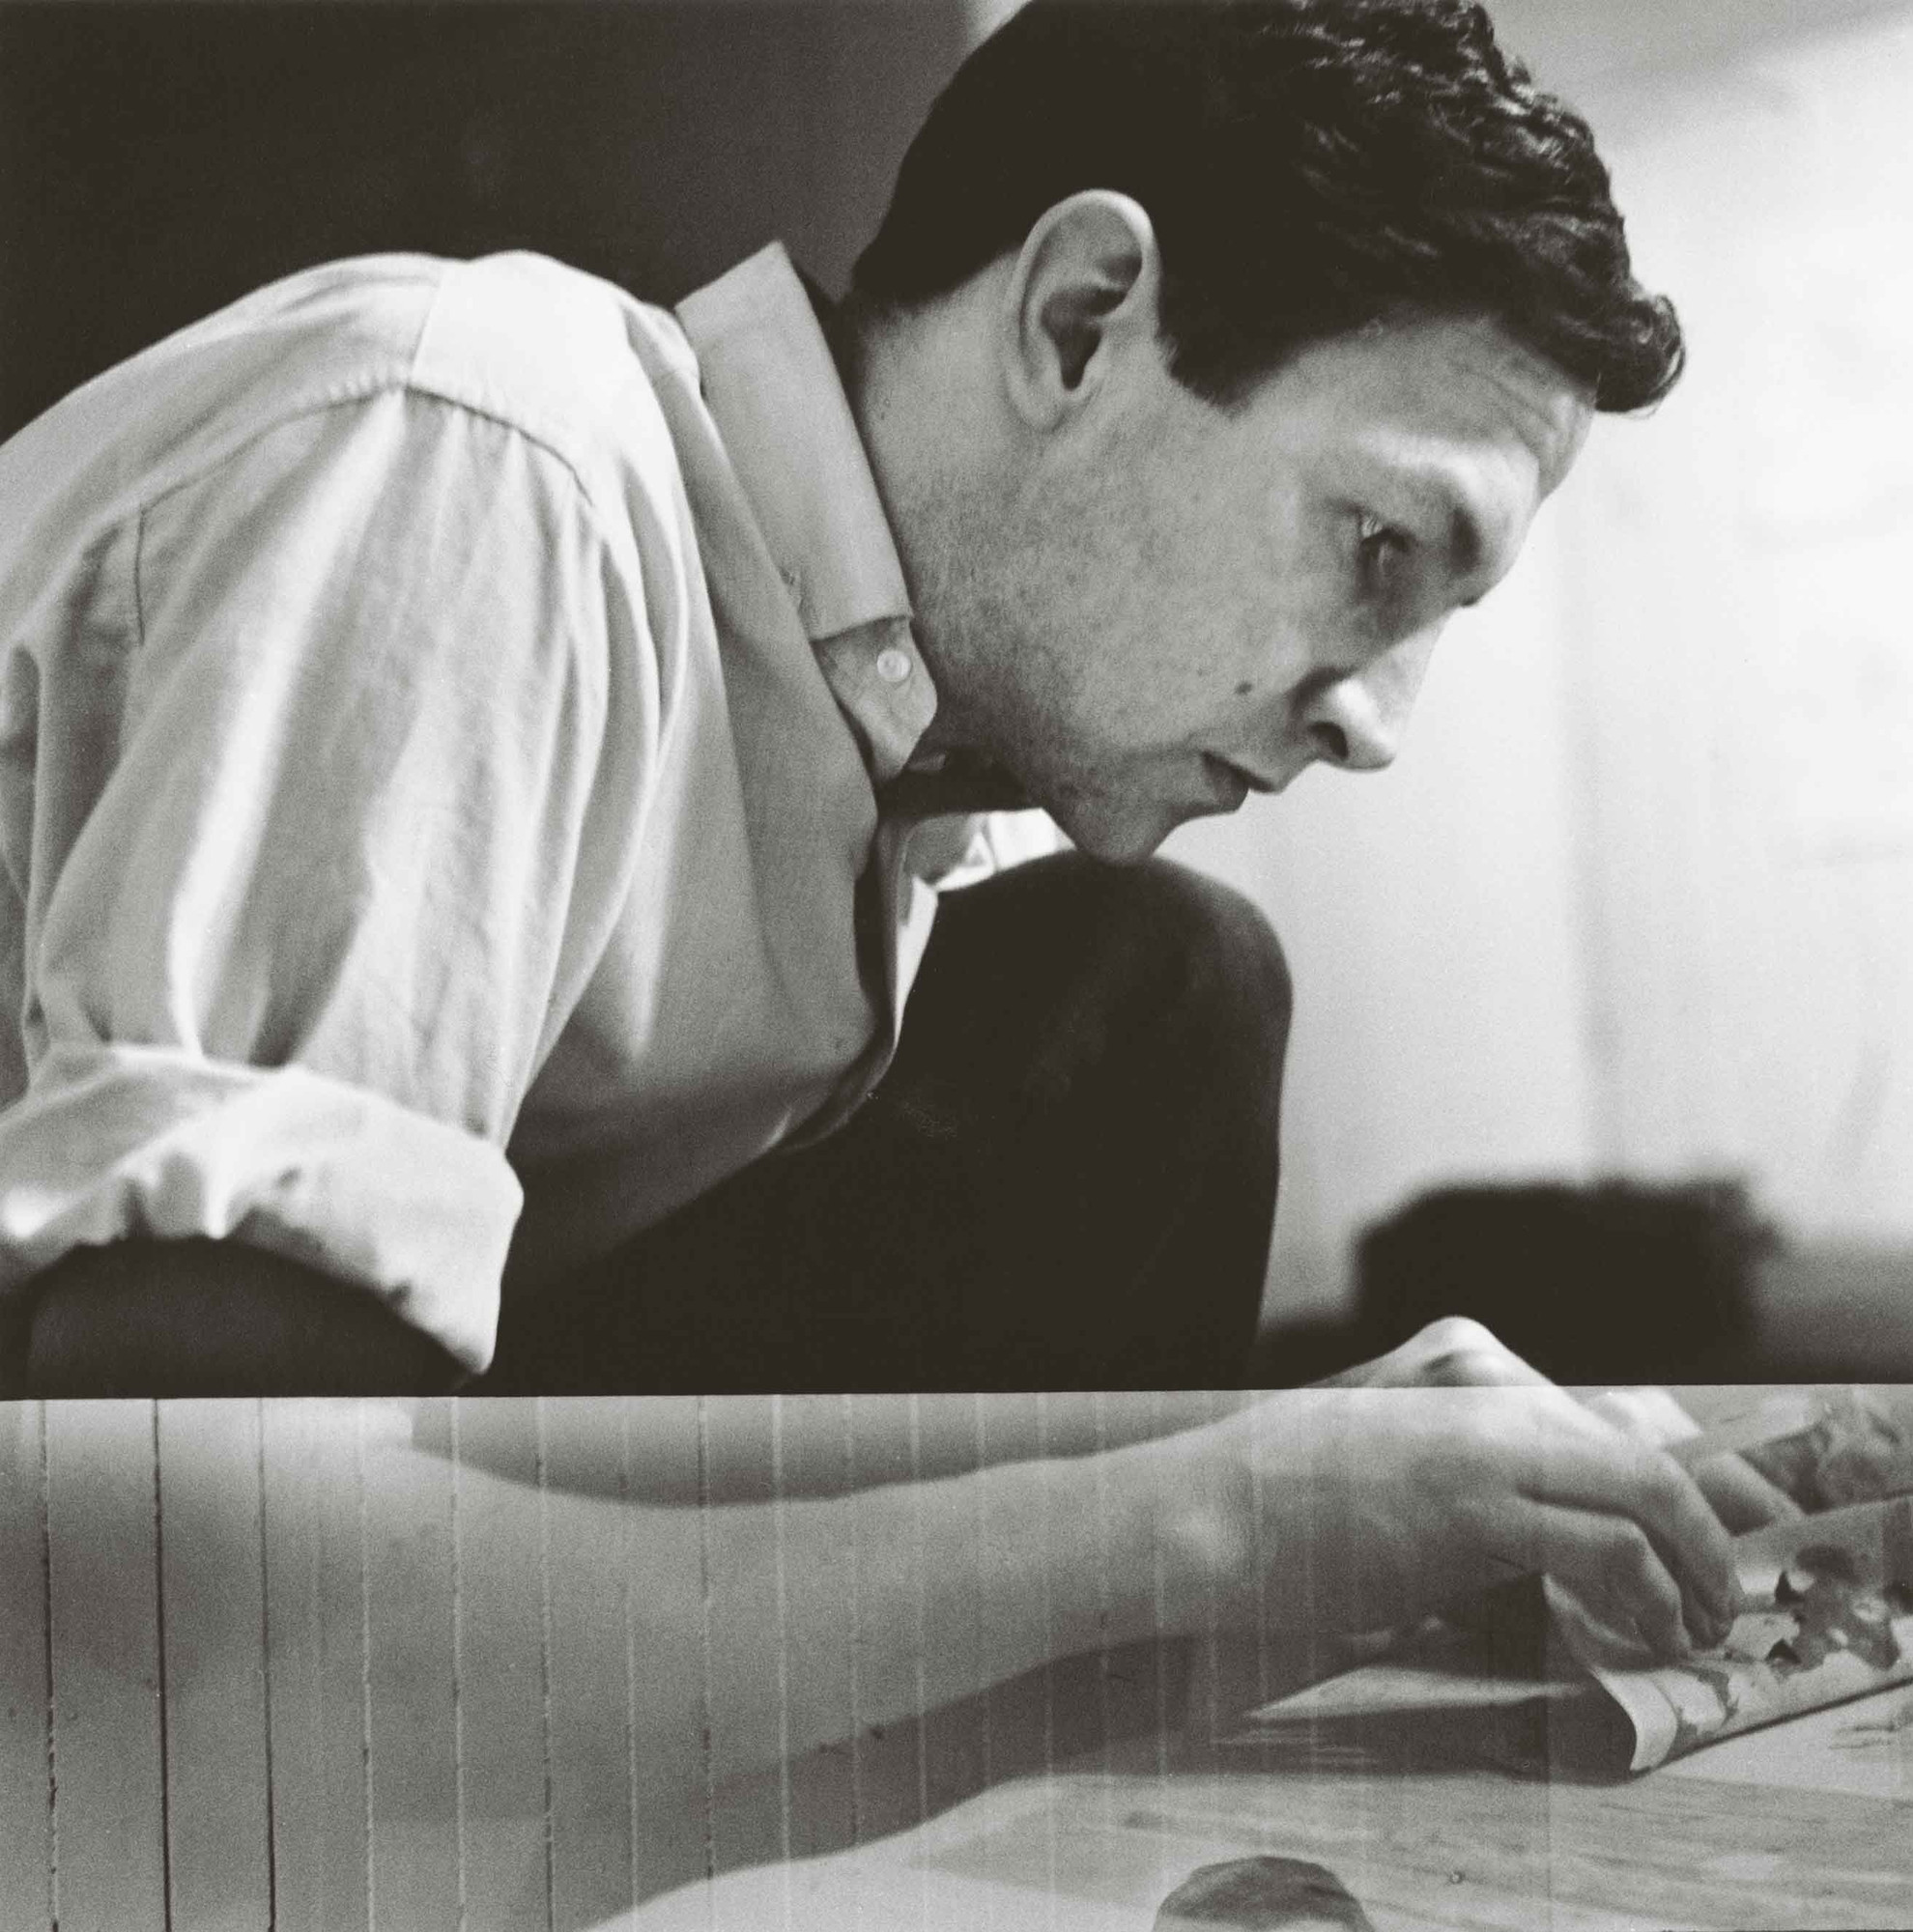 Rauschenberg working on a solvent transfer drawing in his Front Street studio, New York, 1958. Photograph: Jasper Johns. Photograph Collection. Robert Rauschenberg Foundation Archives, New York